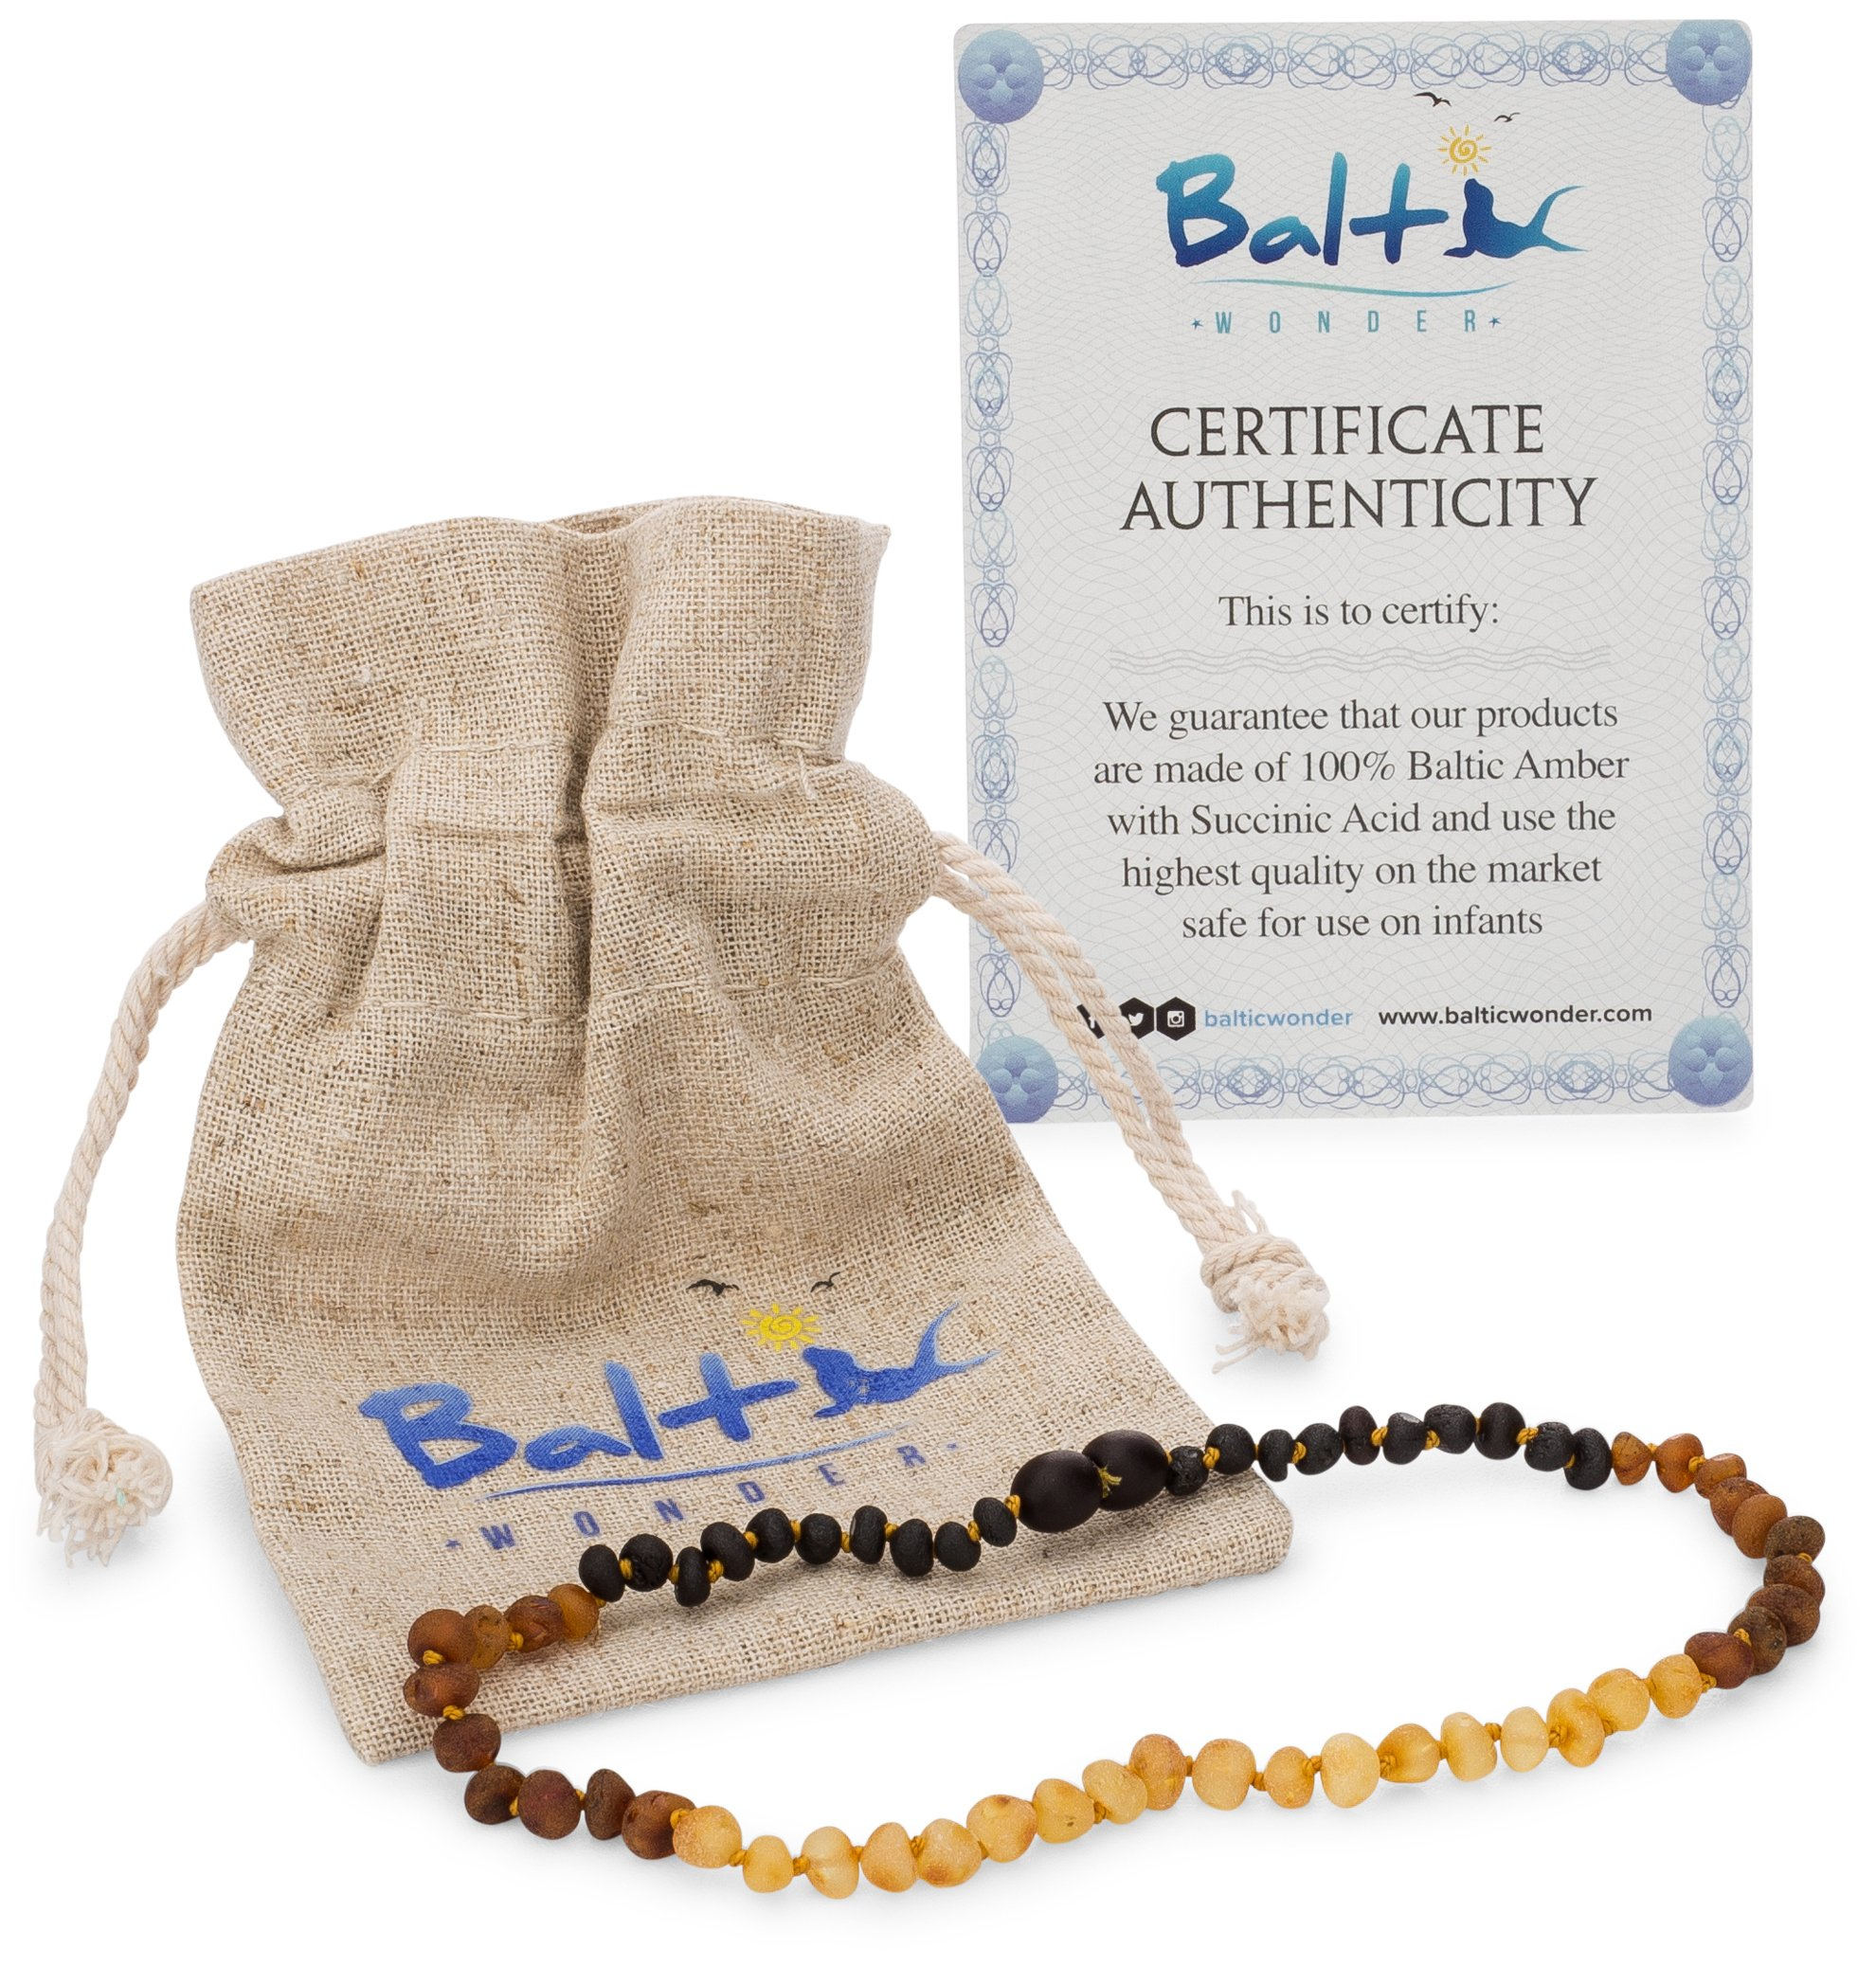 Raw Baltic Amber Teething Necklaces for Babies (Unisex) (Reverse Rainbow) - Anti Flammatory, Drooling & Teething Pain Reduce Properties - Natural Certificated with The Highest Quality Guaranteed. ... by Baltic Wonder